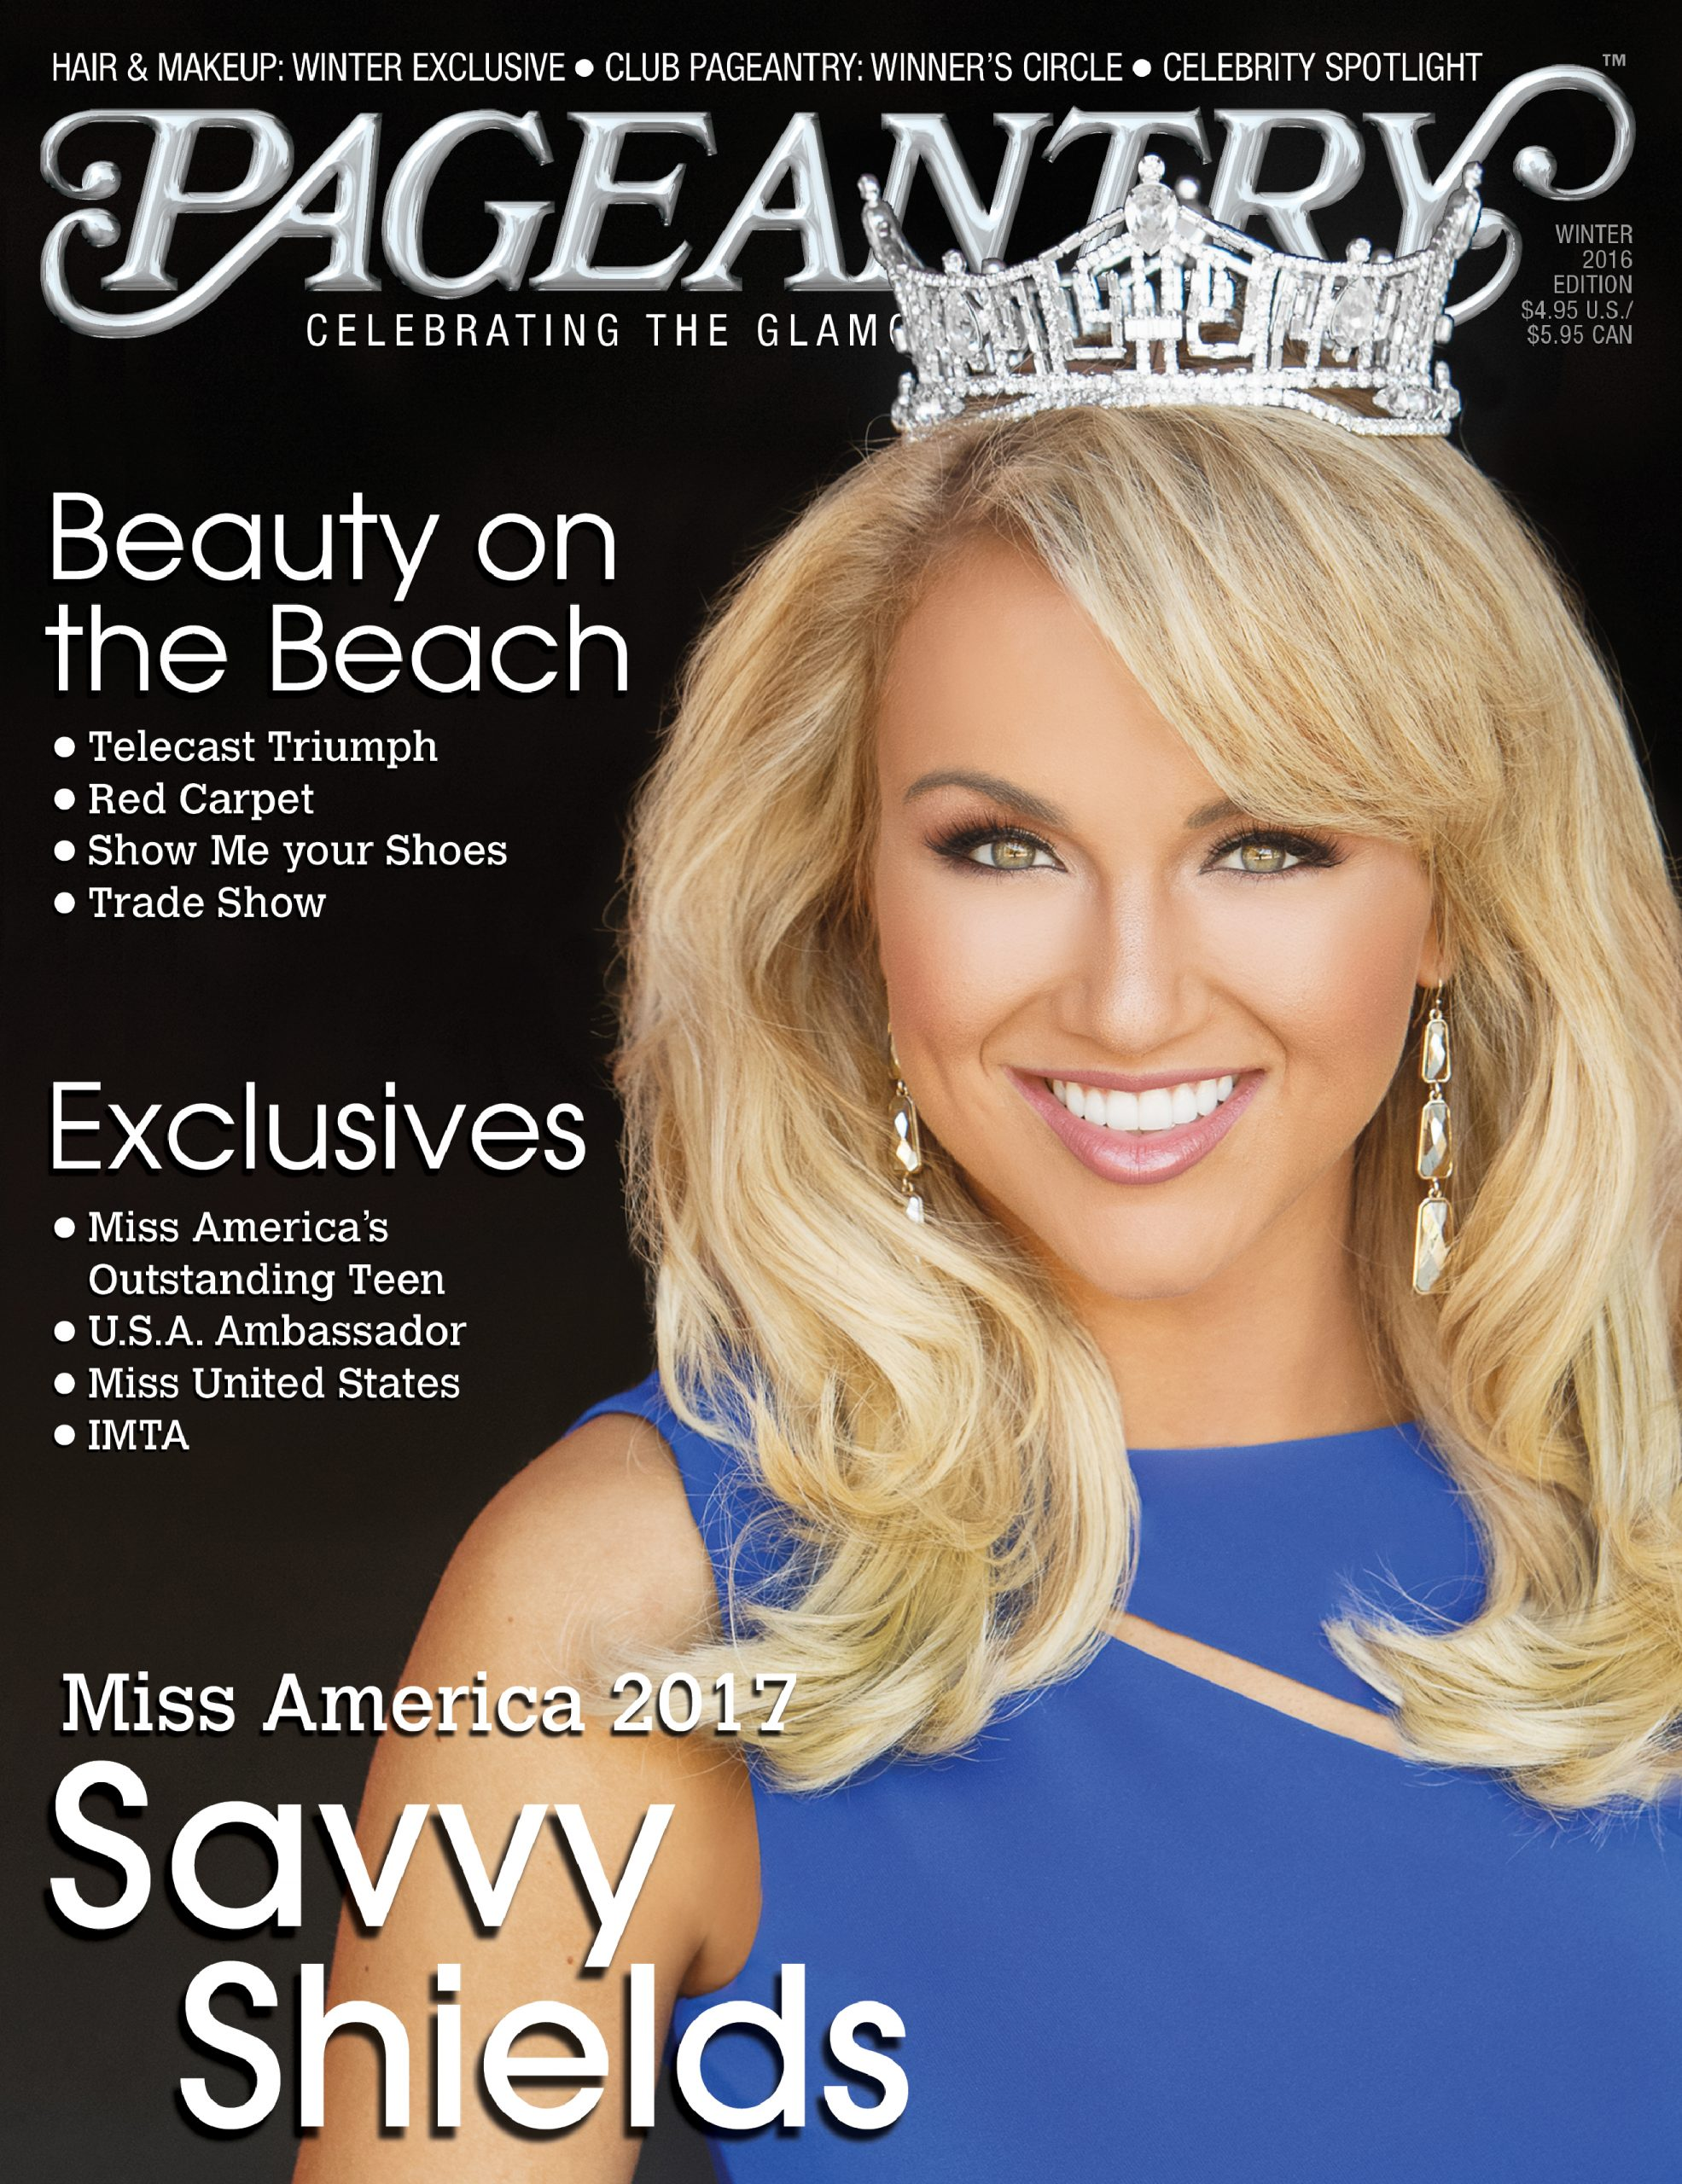 Miss America Pageant, Savvy Shields, MAOTeen, pageant, pageantry, pageant magazine